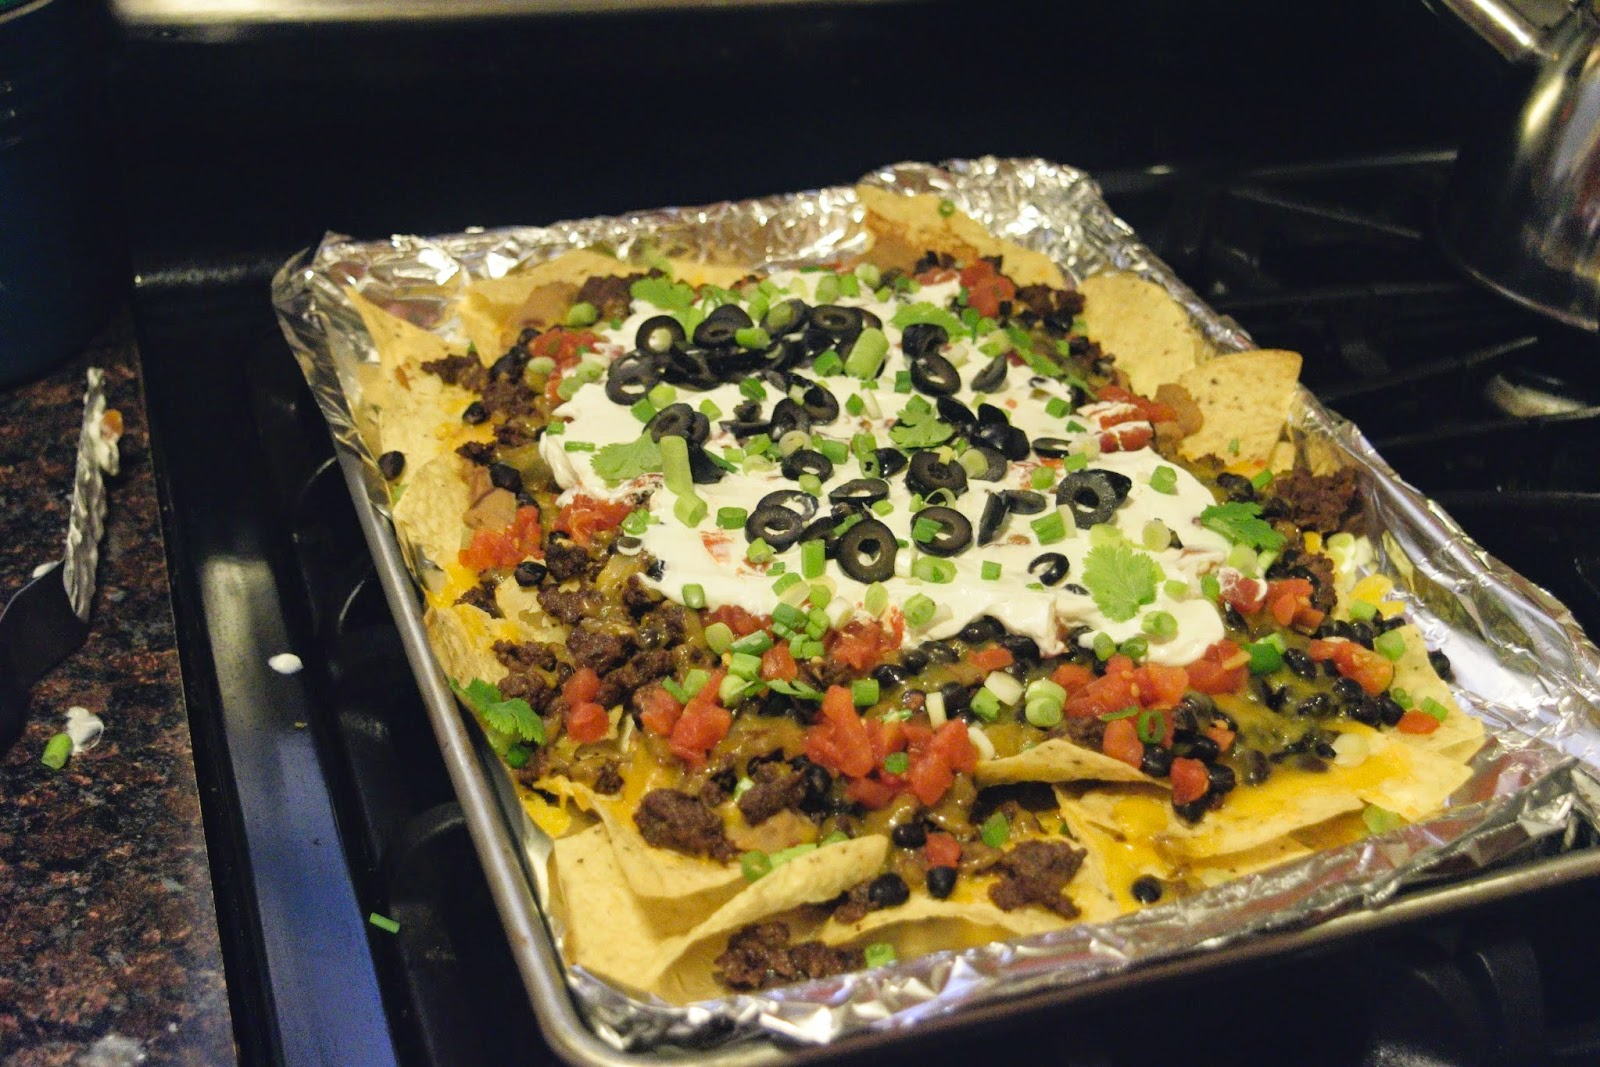 The Nachos Supreme being topped with sour cream, chopped scallions, and sliced black olives.